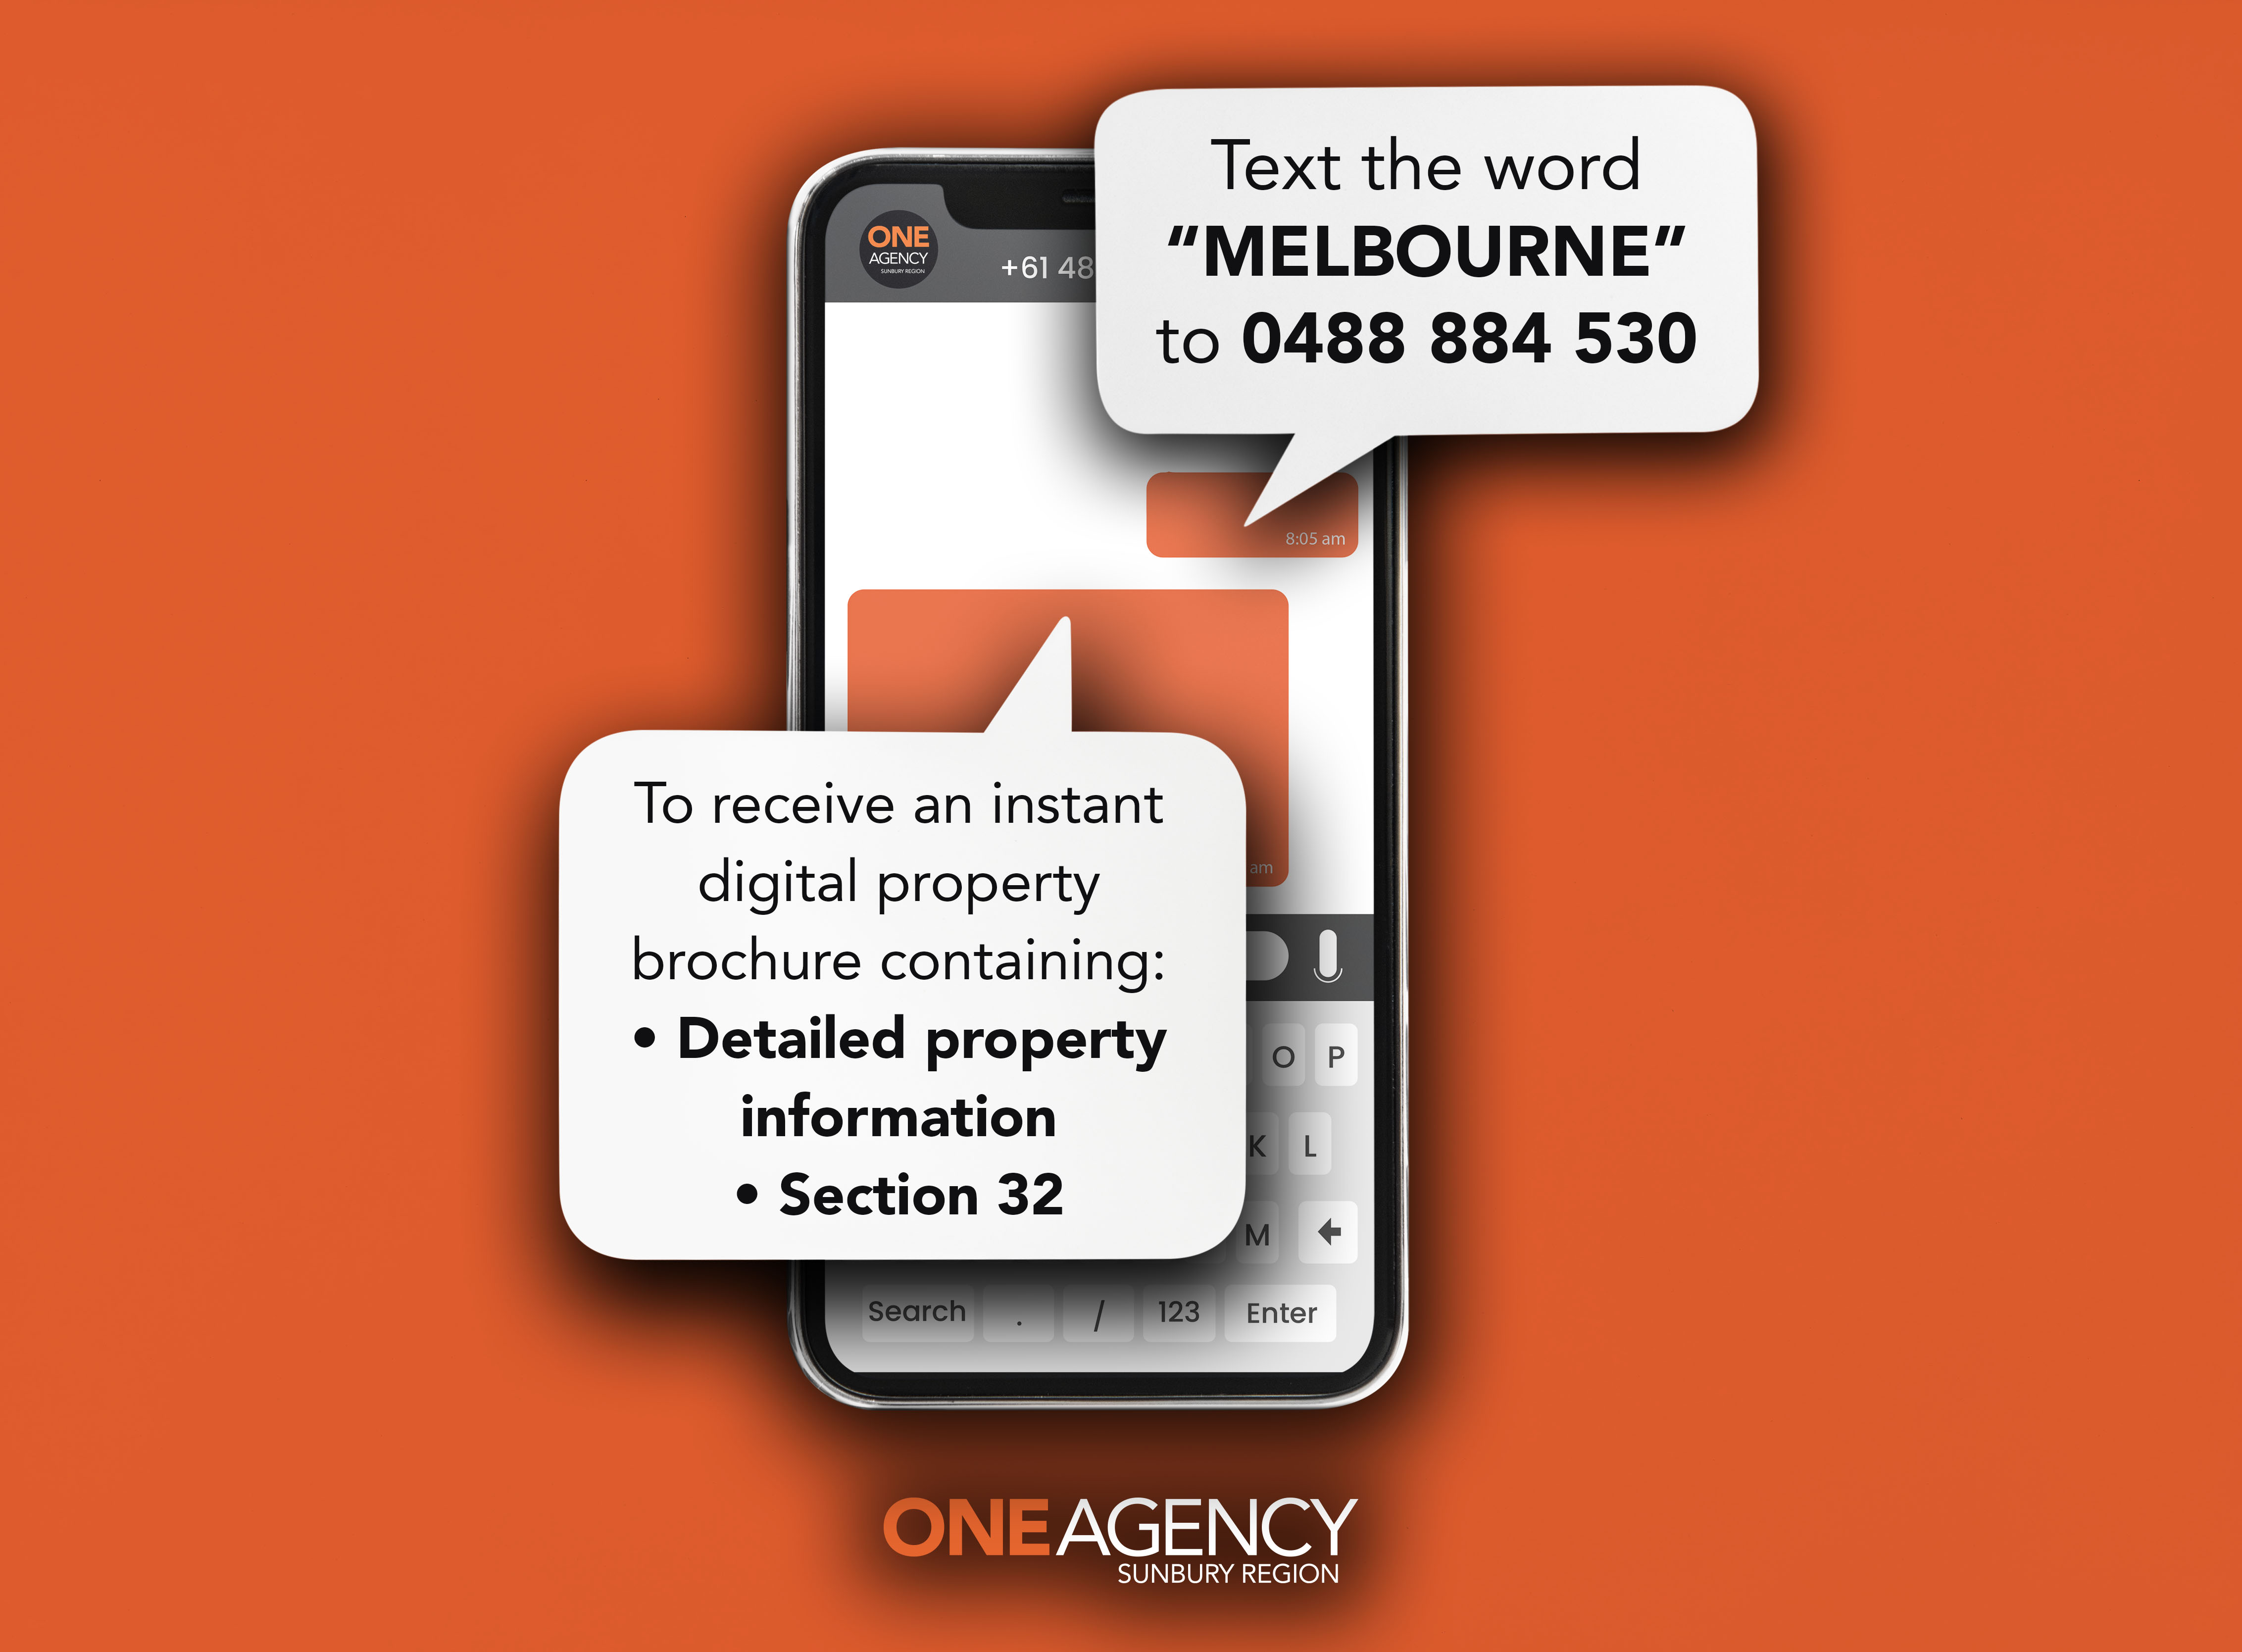 text the word imageMELBOURNE